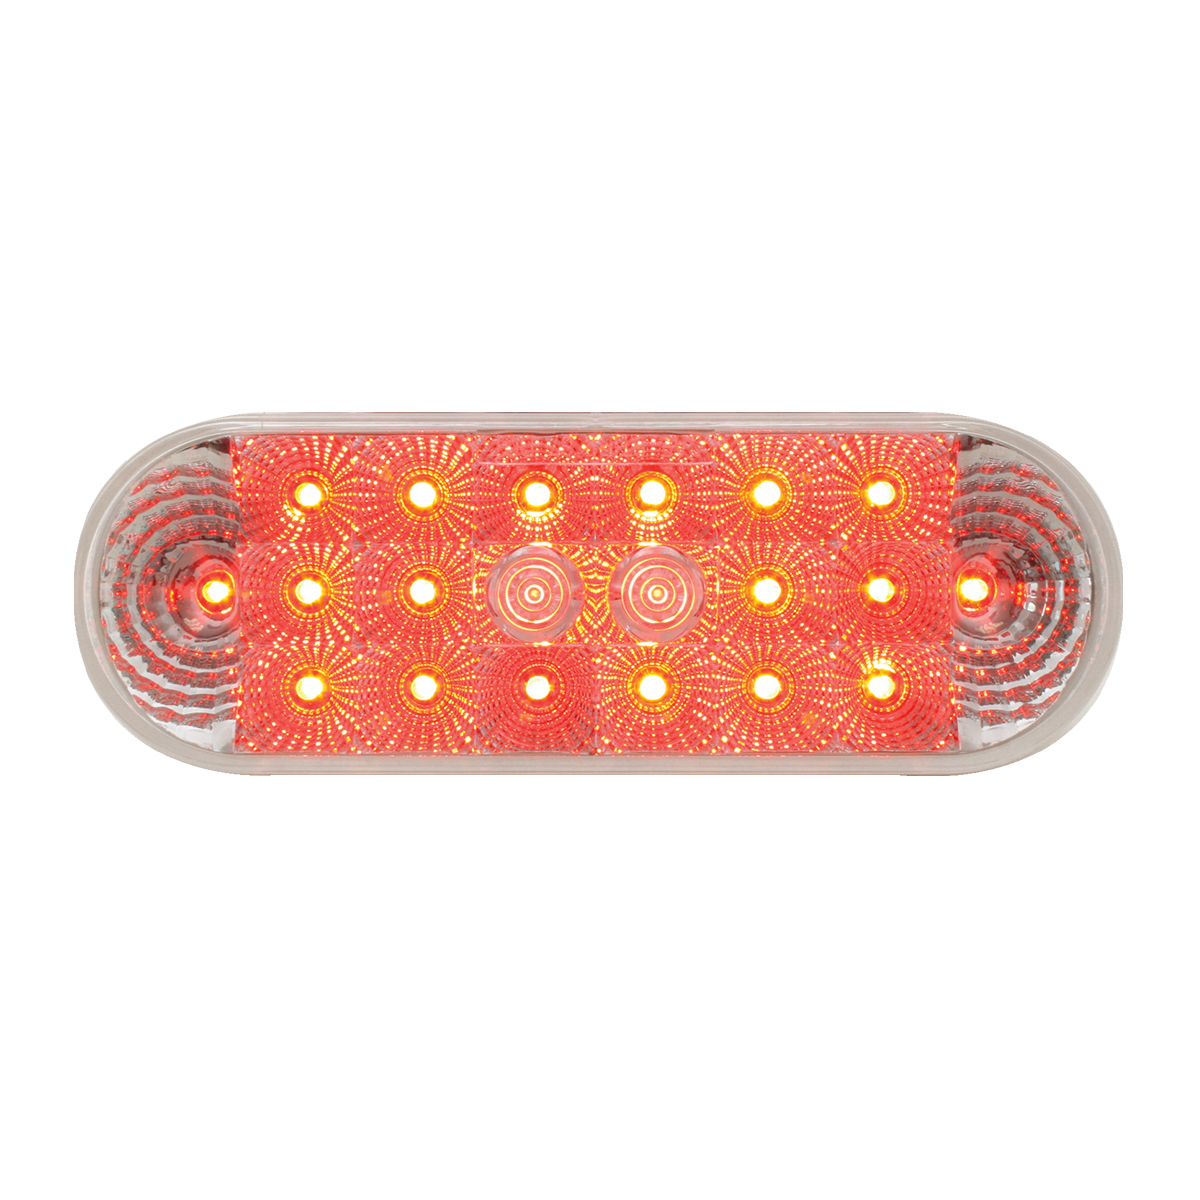 77054 Oval Spyder LED Light in Red/Clear